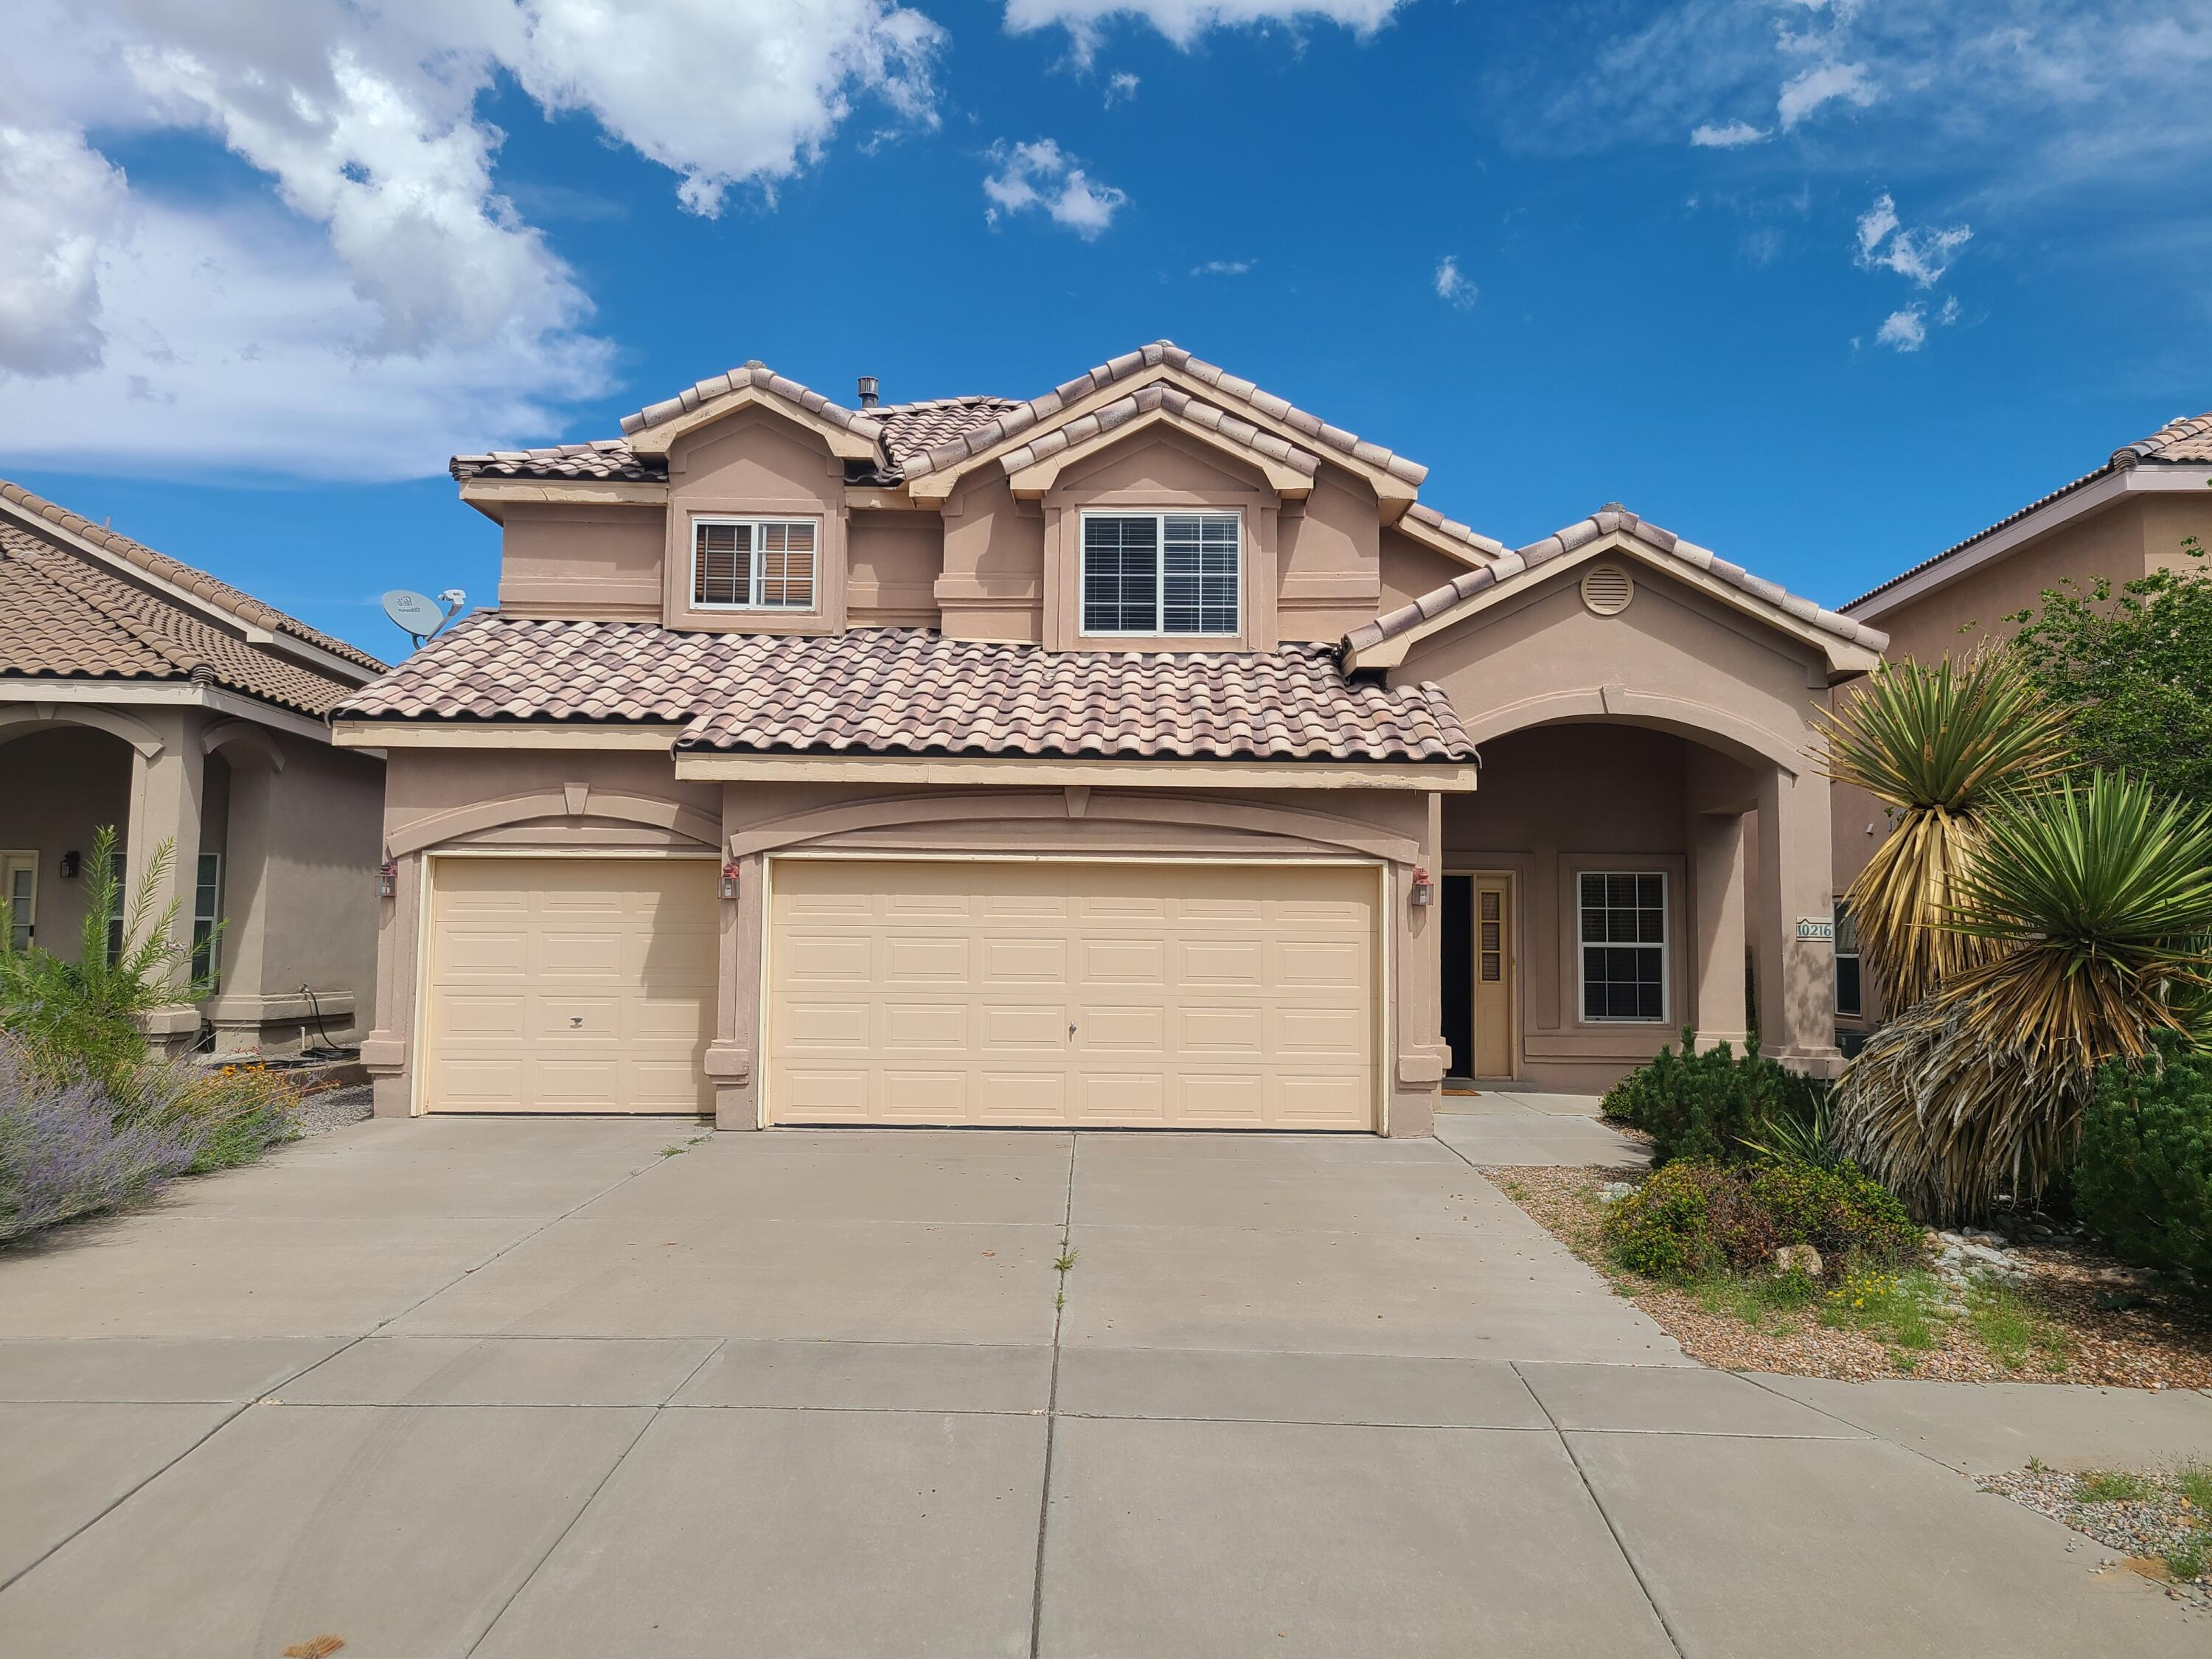 A must see this beautiful home in Ventana Ranch. Move in ready. Water feature, Cieling fans, Balcony off Master, Beautiful Landscape. This one won't last. Tile on main floor.